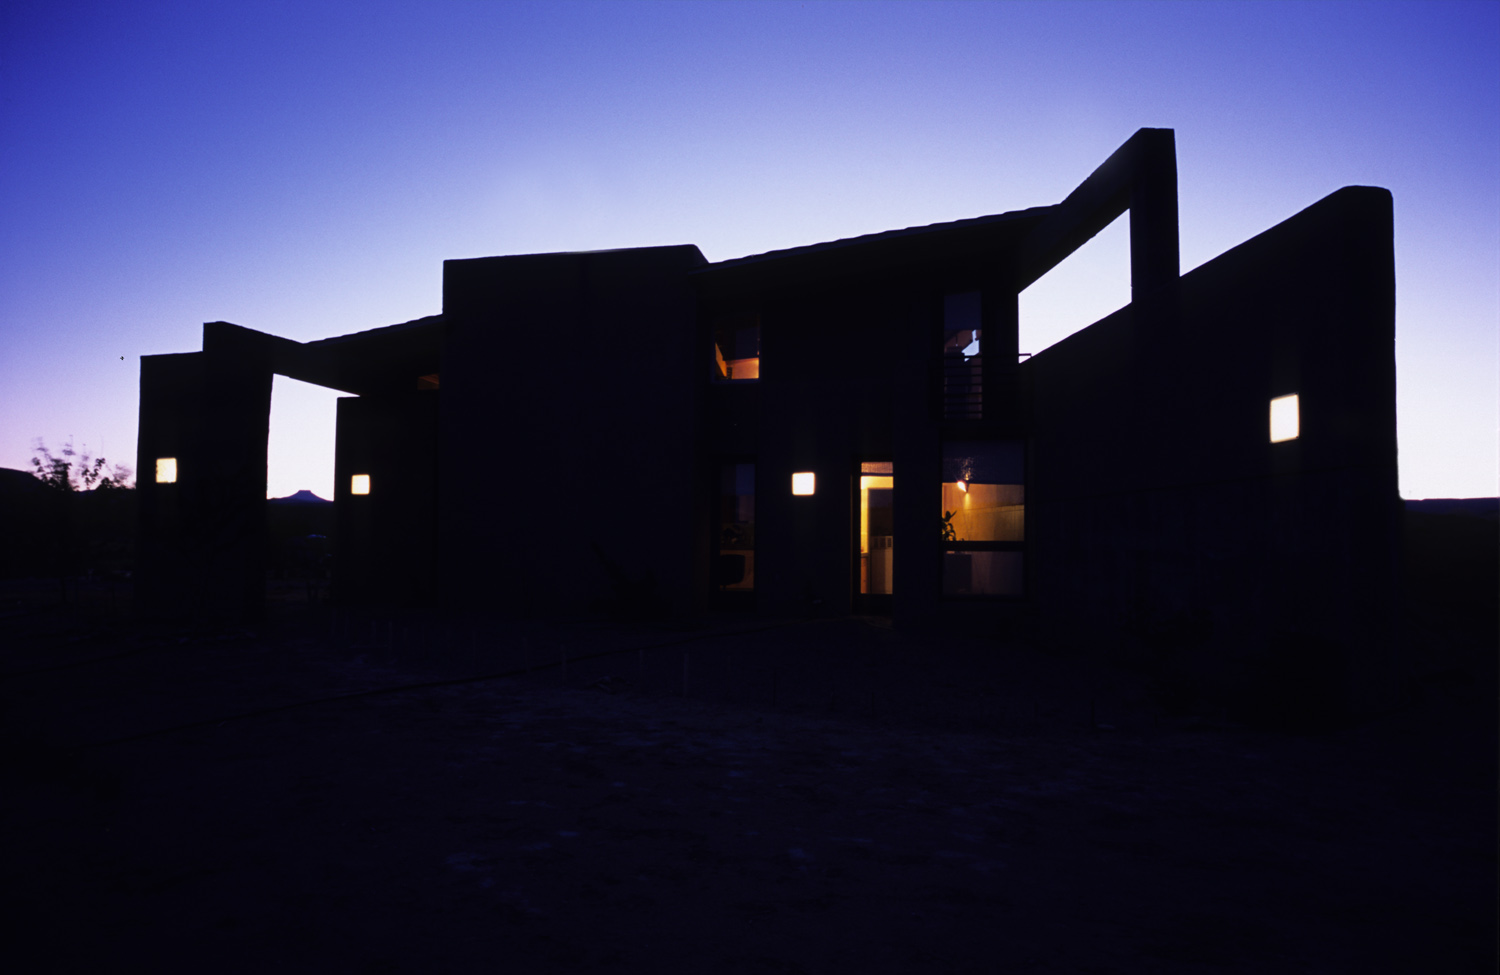 2006 ENERGY & SUSTAINABILITY AWARDAMERICAN INSTITUTE OF ARCHITECTSSAN FRANCISCO CHAPTERAn artist's studio and residence in Abiquiu, New Mexico. High desert, about 6,000 feet above sea level. The program called for a passive solar building consisting of a workshop and dwelling as a first phase, and a residence as a second. The client - an artist whose work bridges a variety of media and contexts - states her predilections in an early letter: {quote}Clearly passive solar, water conservation and other ecological concerns are on my mind, but so are simplicity, function, as well as an interest in incorporating traditional  details, possibly in unexpected ways.{quote}